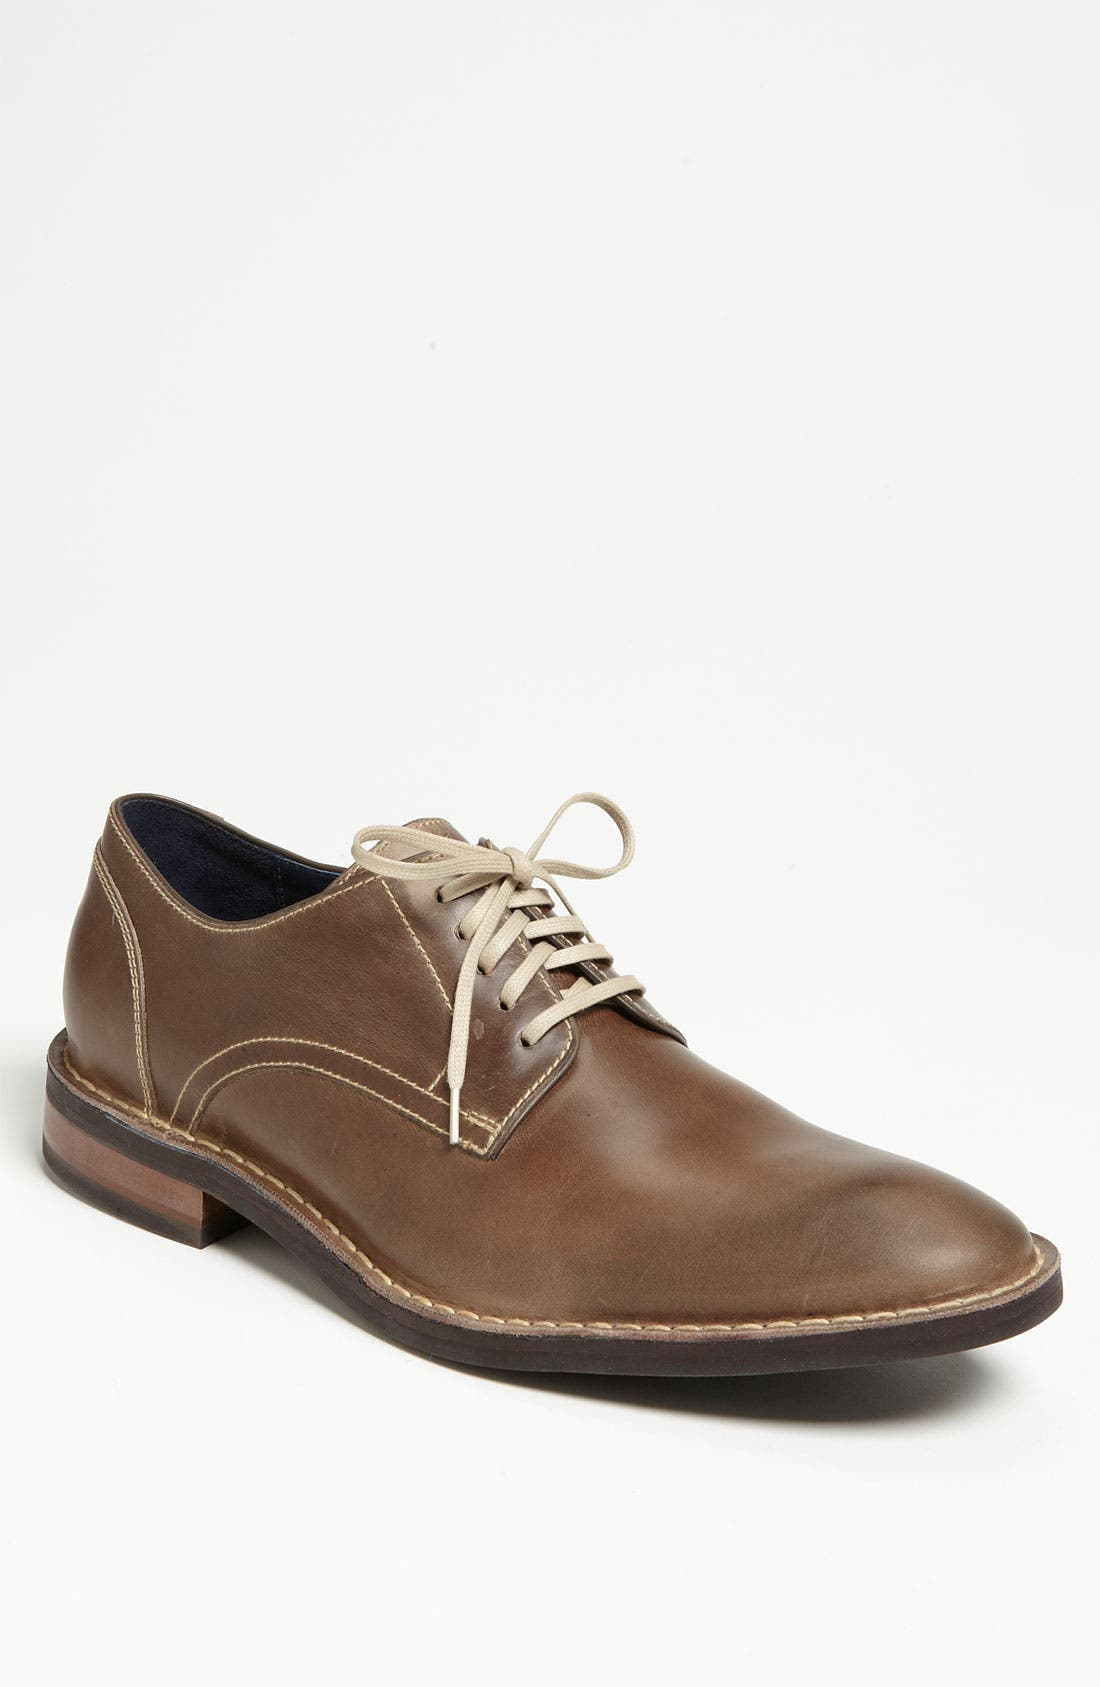 Alternate Image 1 Selected - Cole Haan 'Air Stratton' Oxford   (Men)